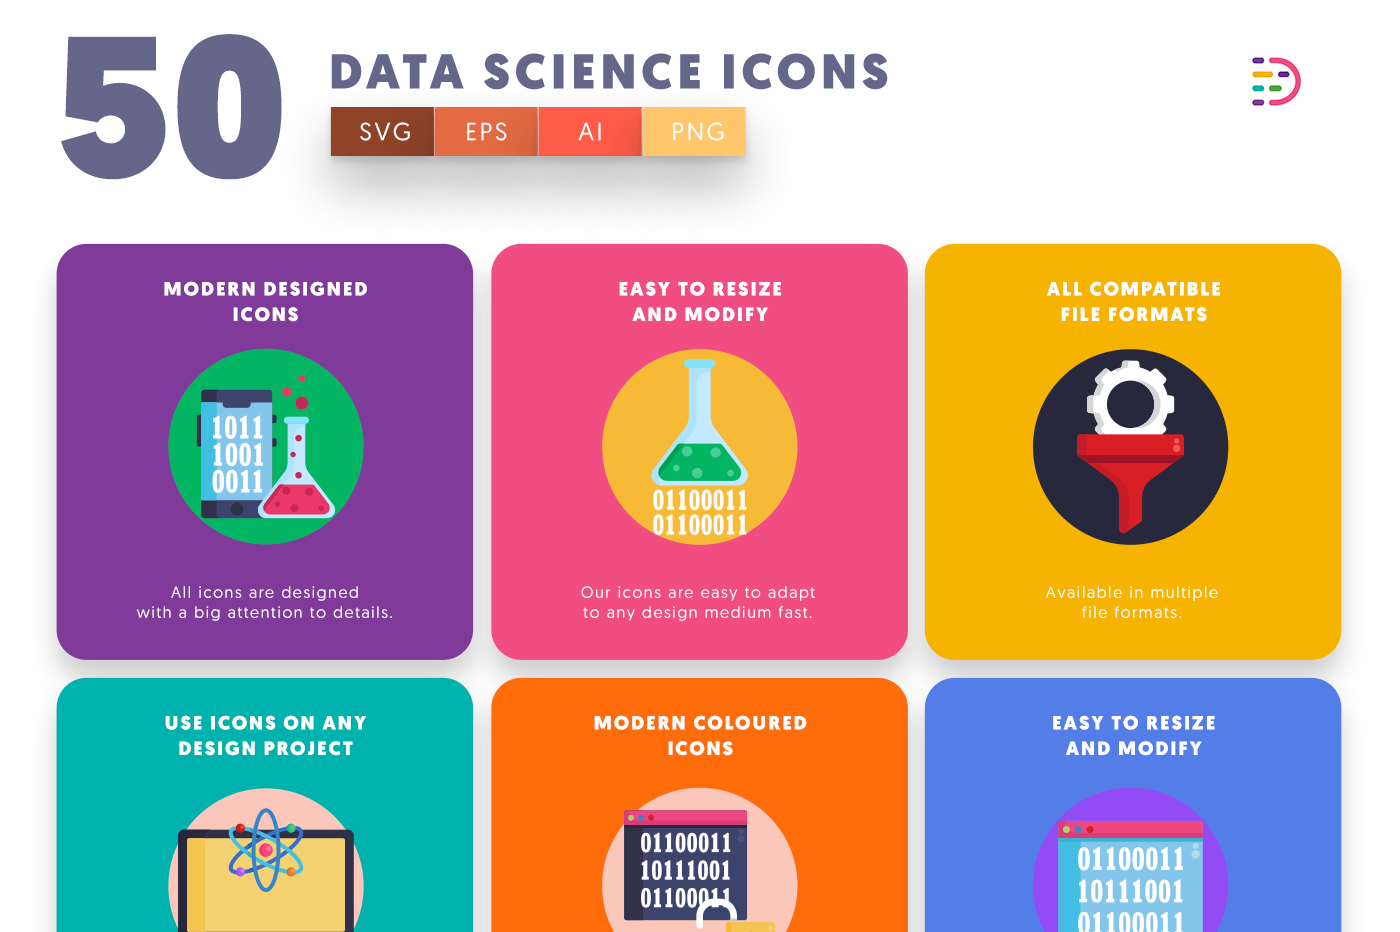 50 Data Science Icons with colored backgrounds